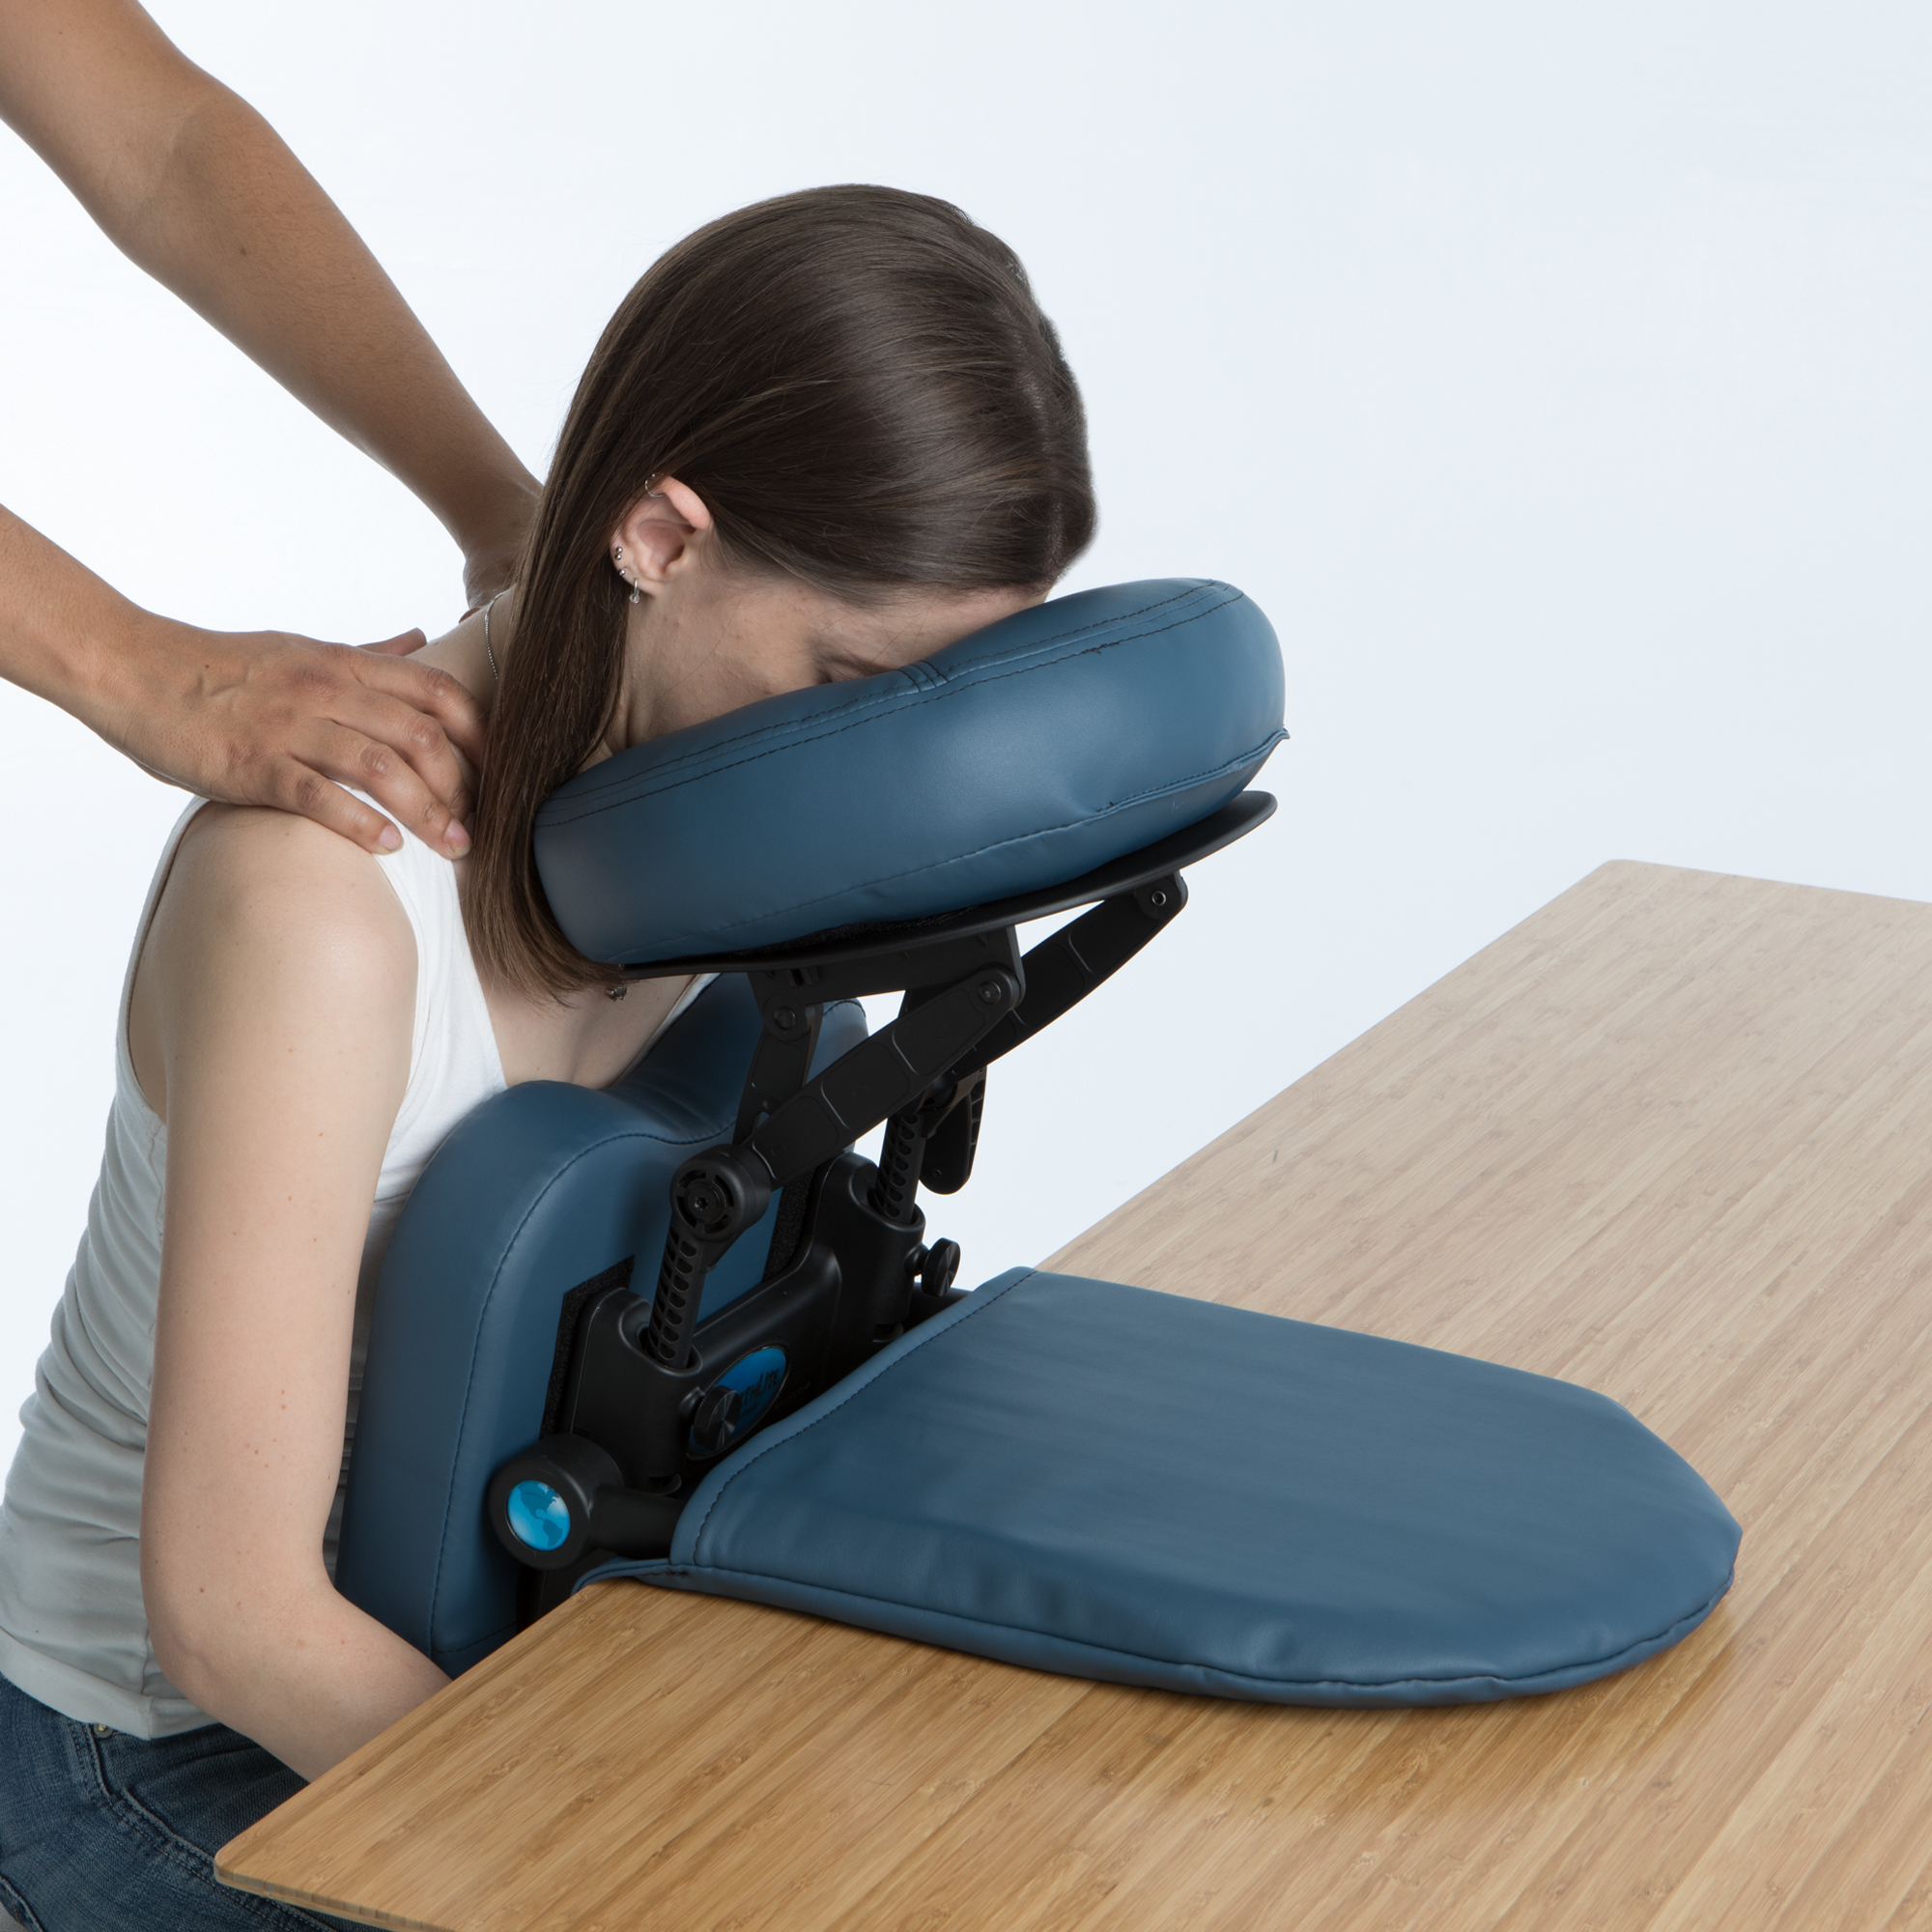 EARTHLITE Travelmate Massage Support System Package - Face Down Desk & Tabletop Massage Kit, Vitrectomy recovery equipment